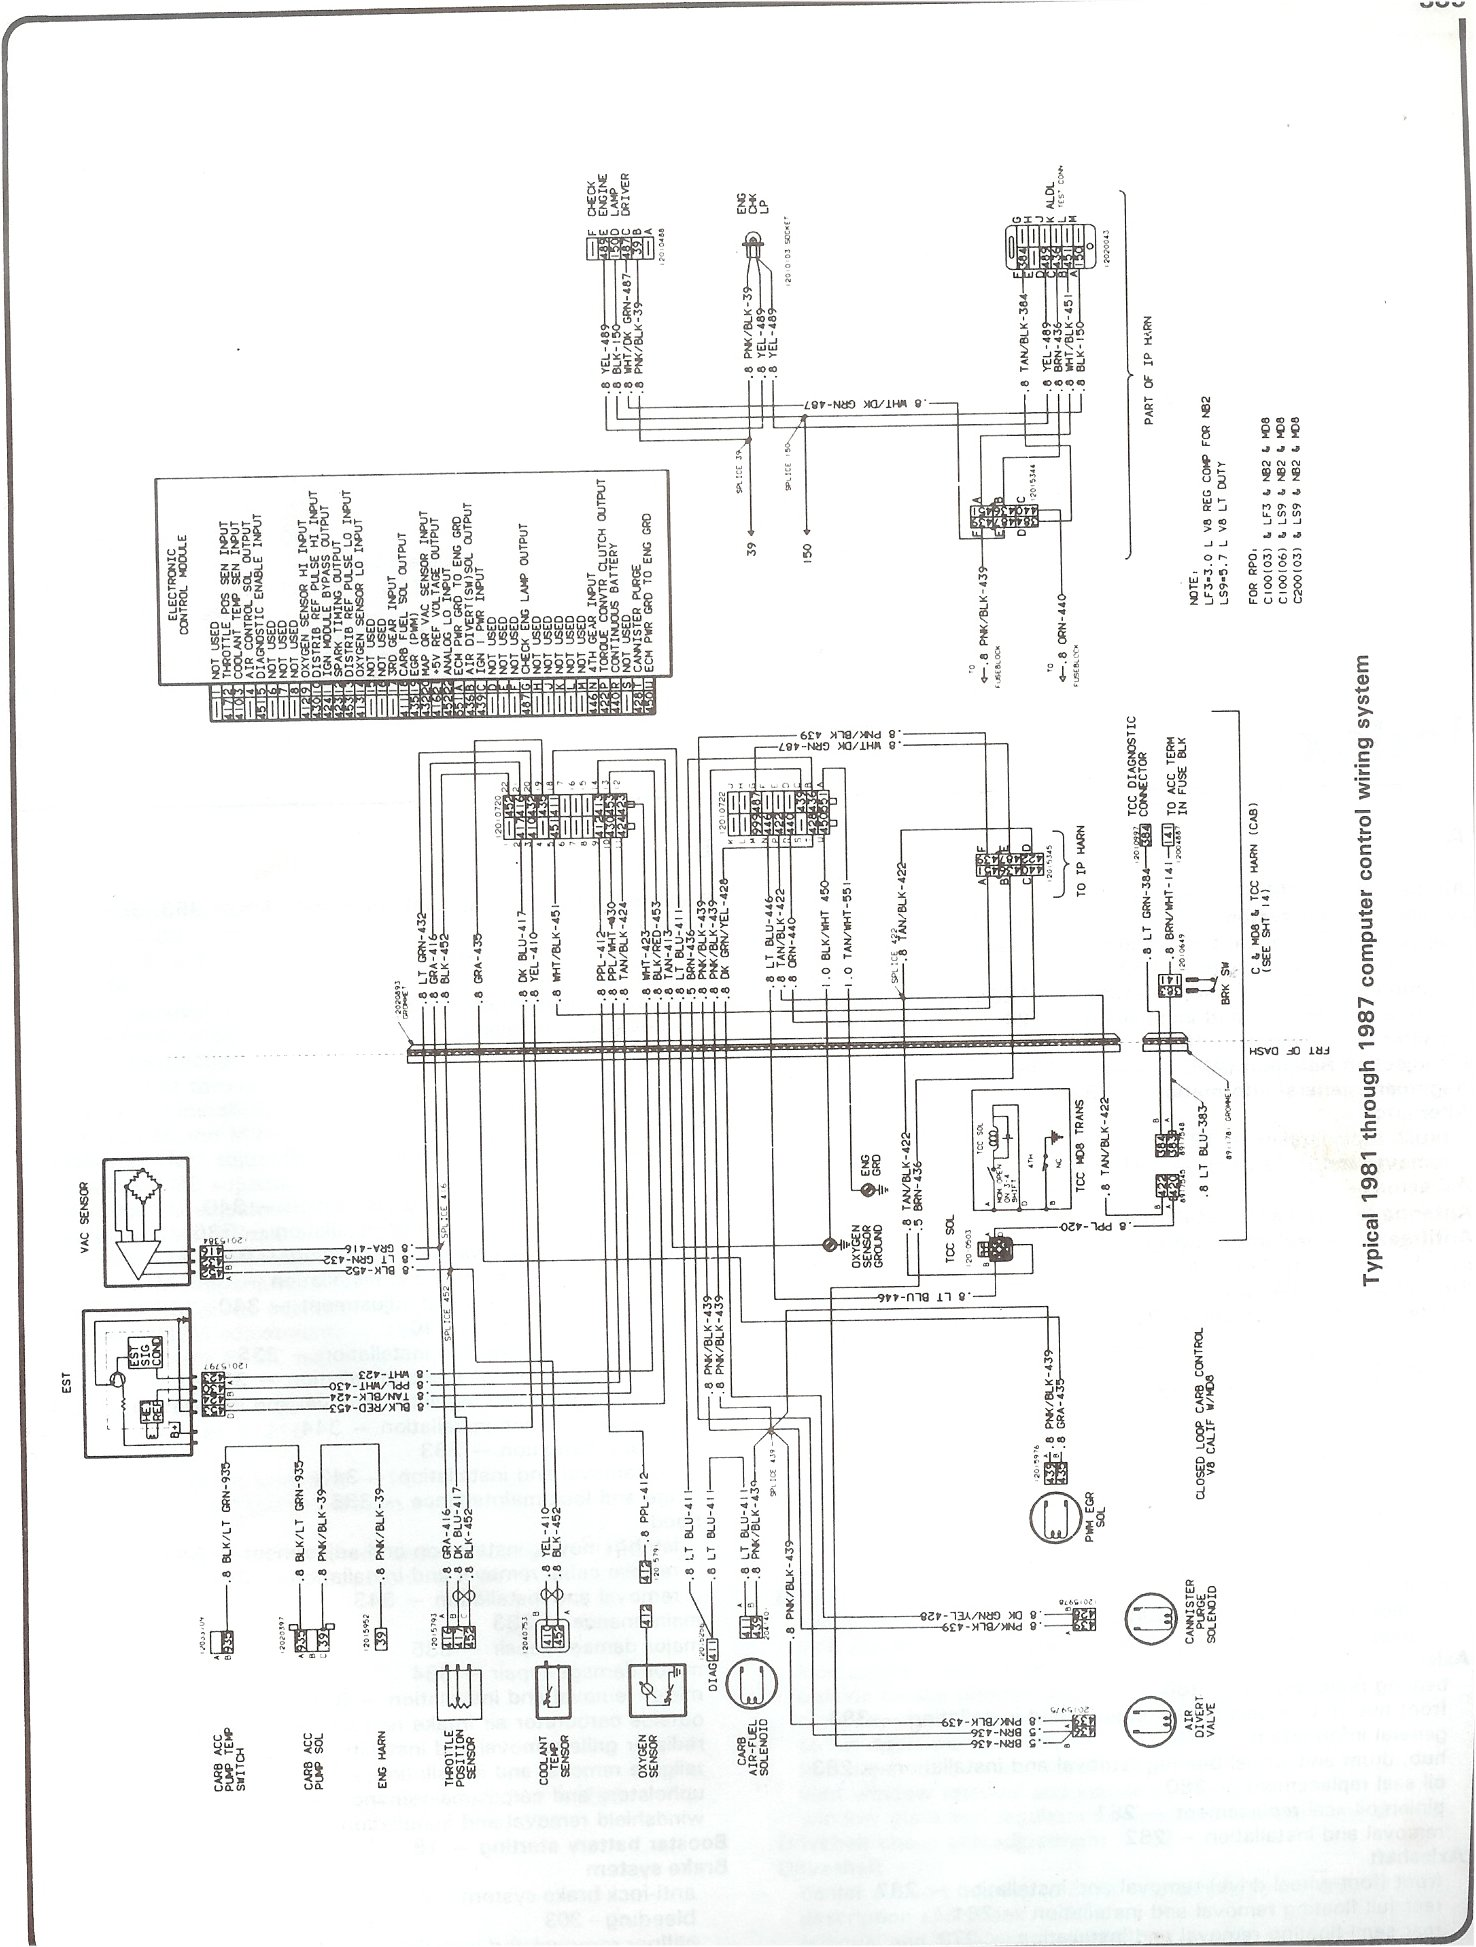 81 87_computer_control_wiring complete 73 87 wiring diagrams chevy wiring harness diagram at gsmx.co